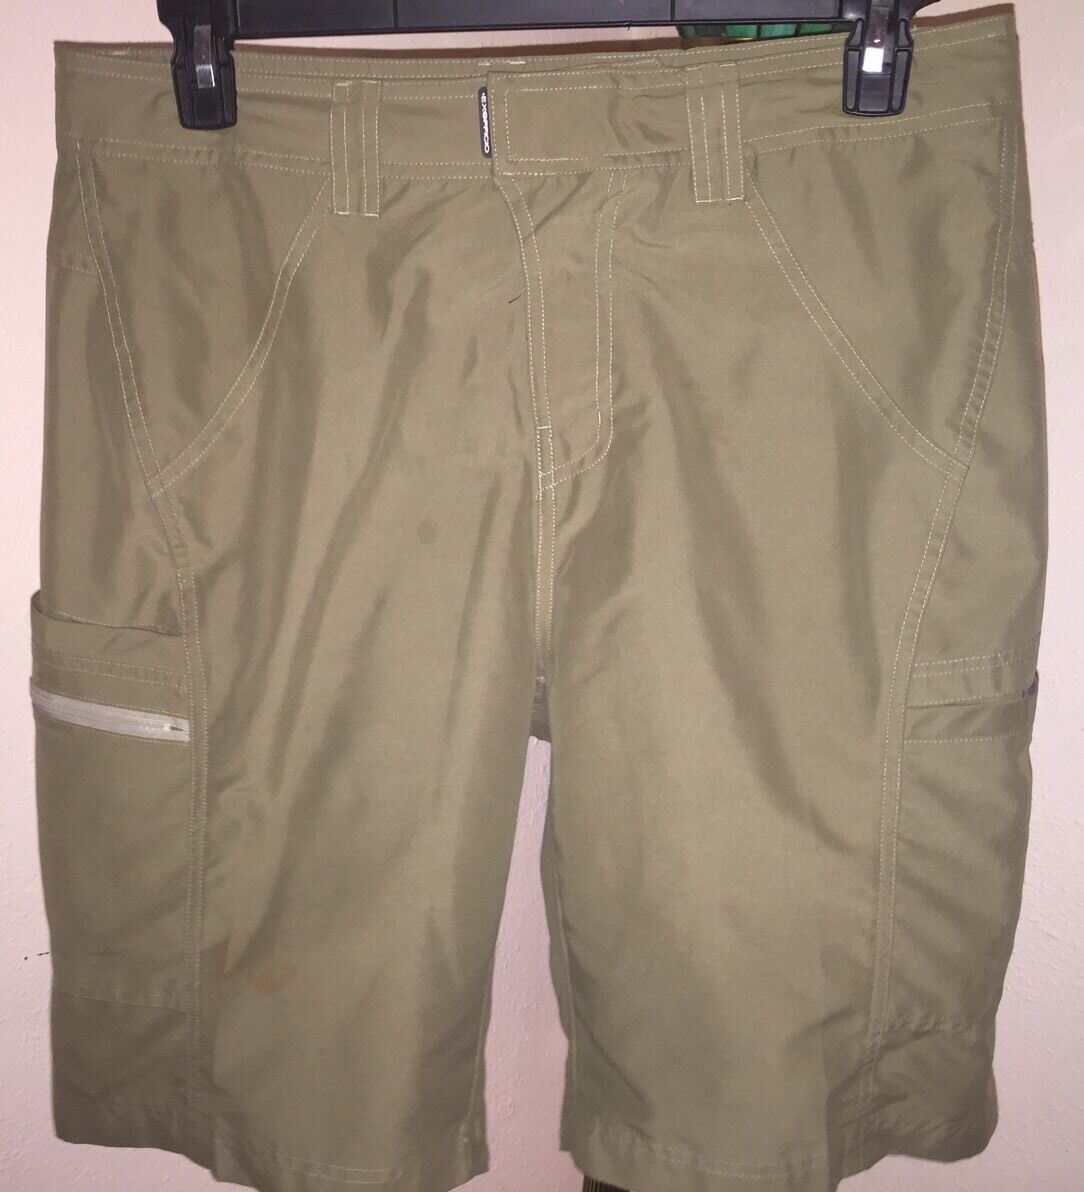 MEN'S EX OFFICIO MARLOCO WATER BOARDSHORTS HIKING SZ 34 MINT WALNUT COLOR